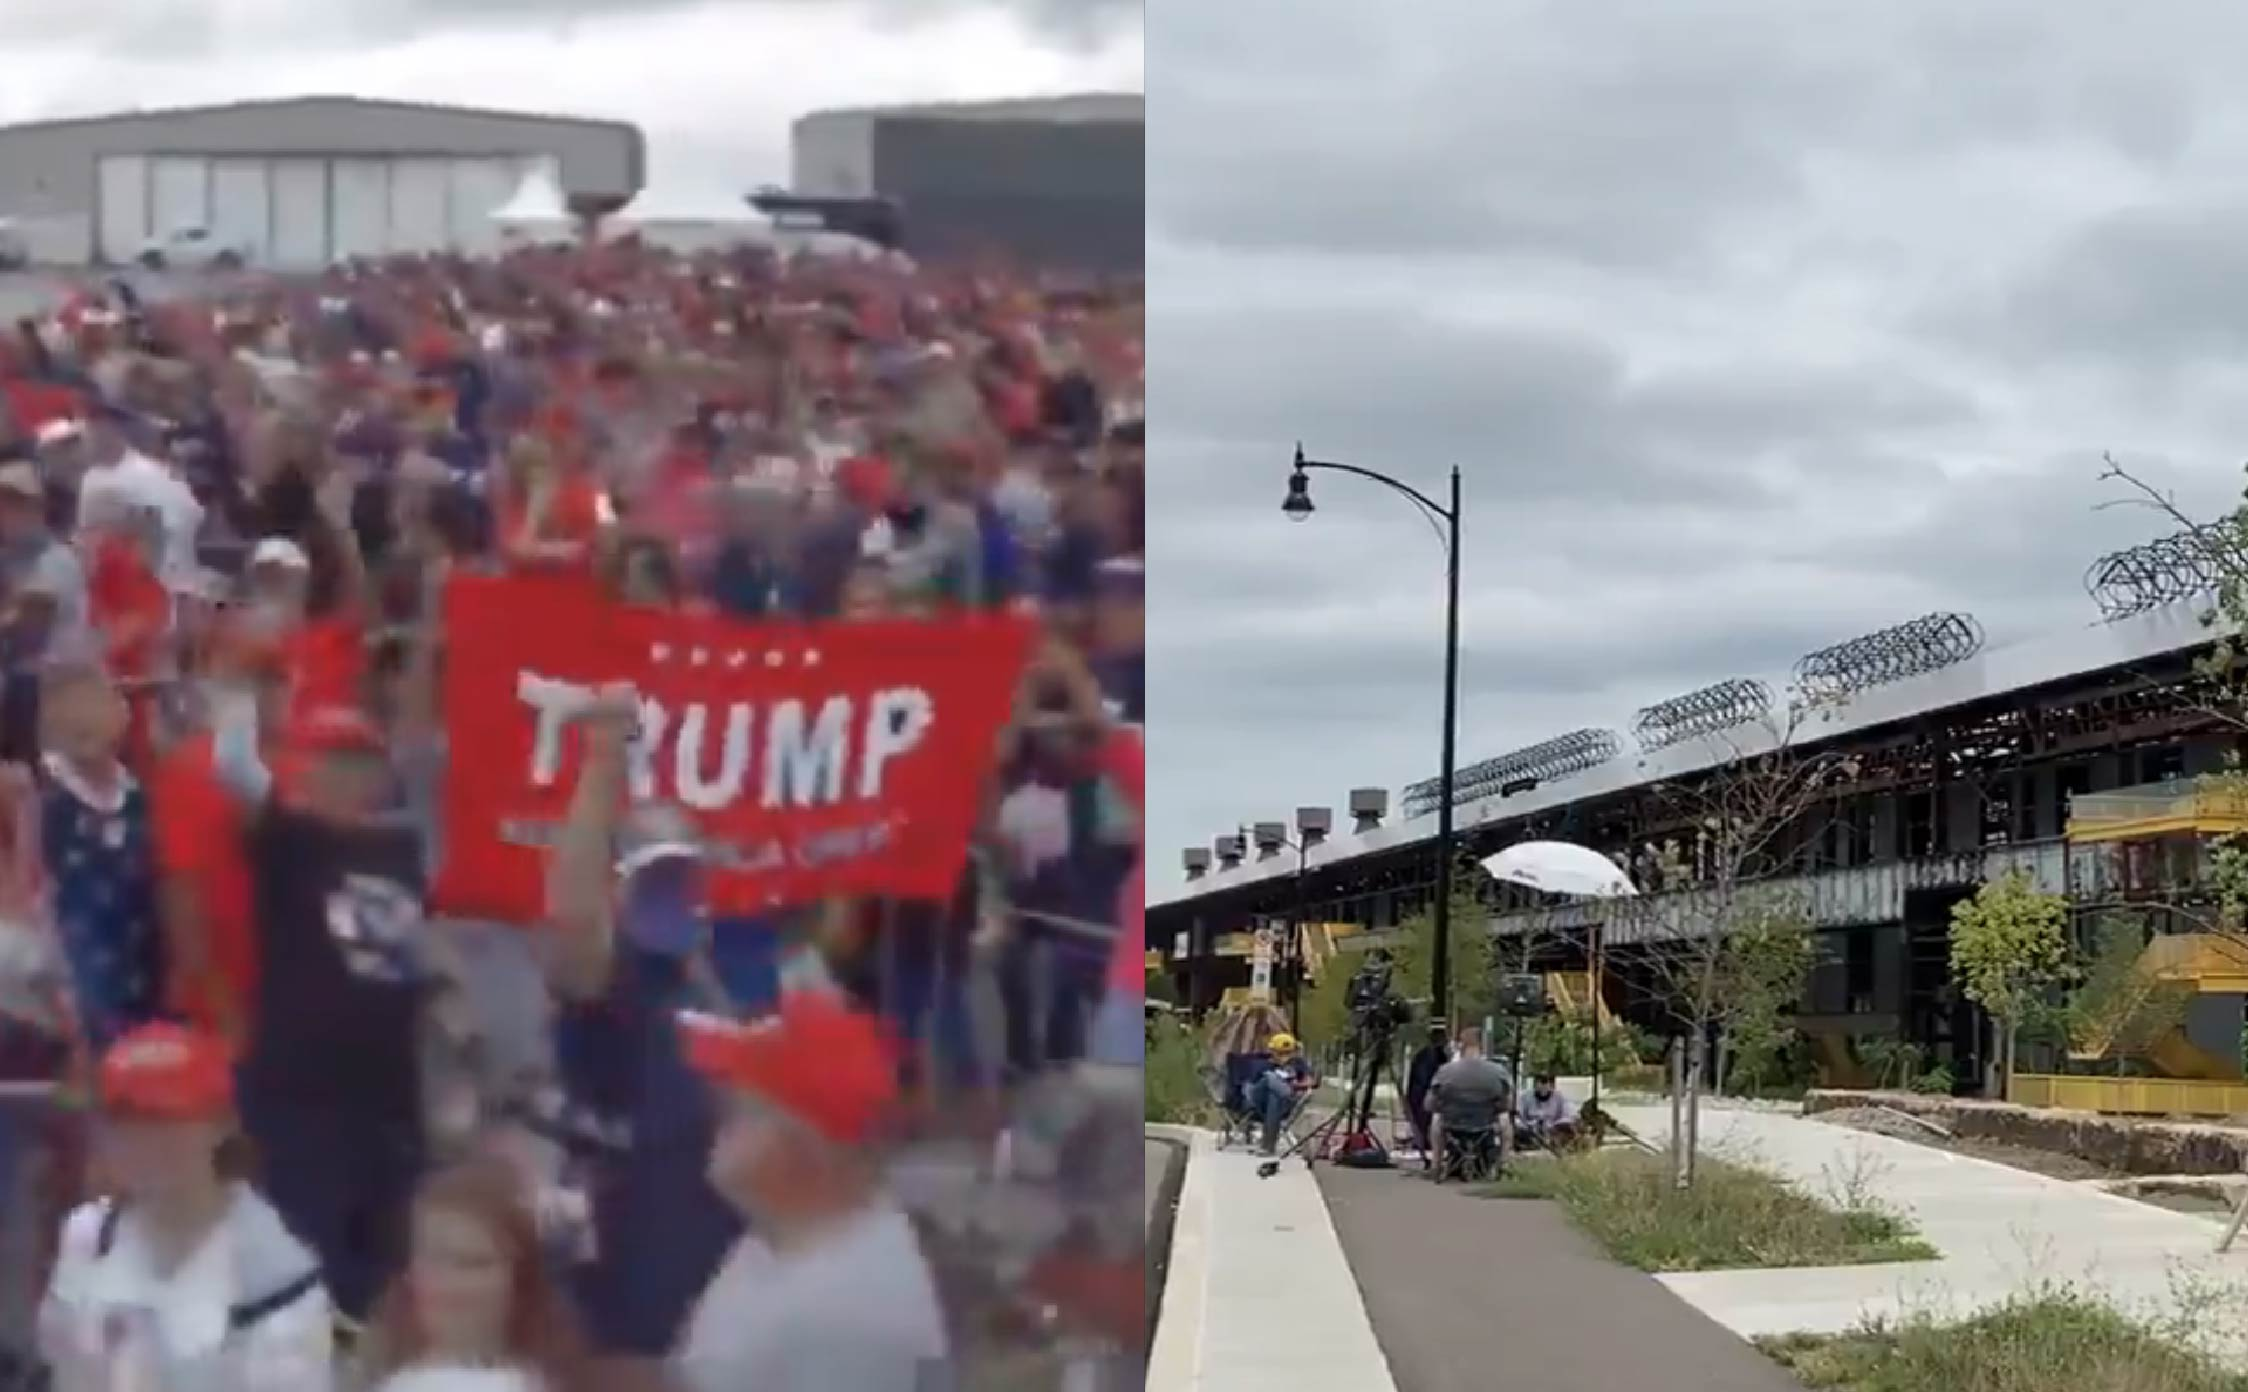 [WATCH] These Videos Show the Shocking Differences Between Trump and Biden's Rallies One Hour Before Showtime